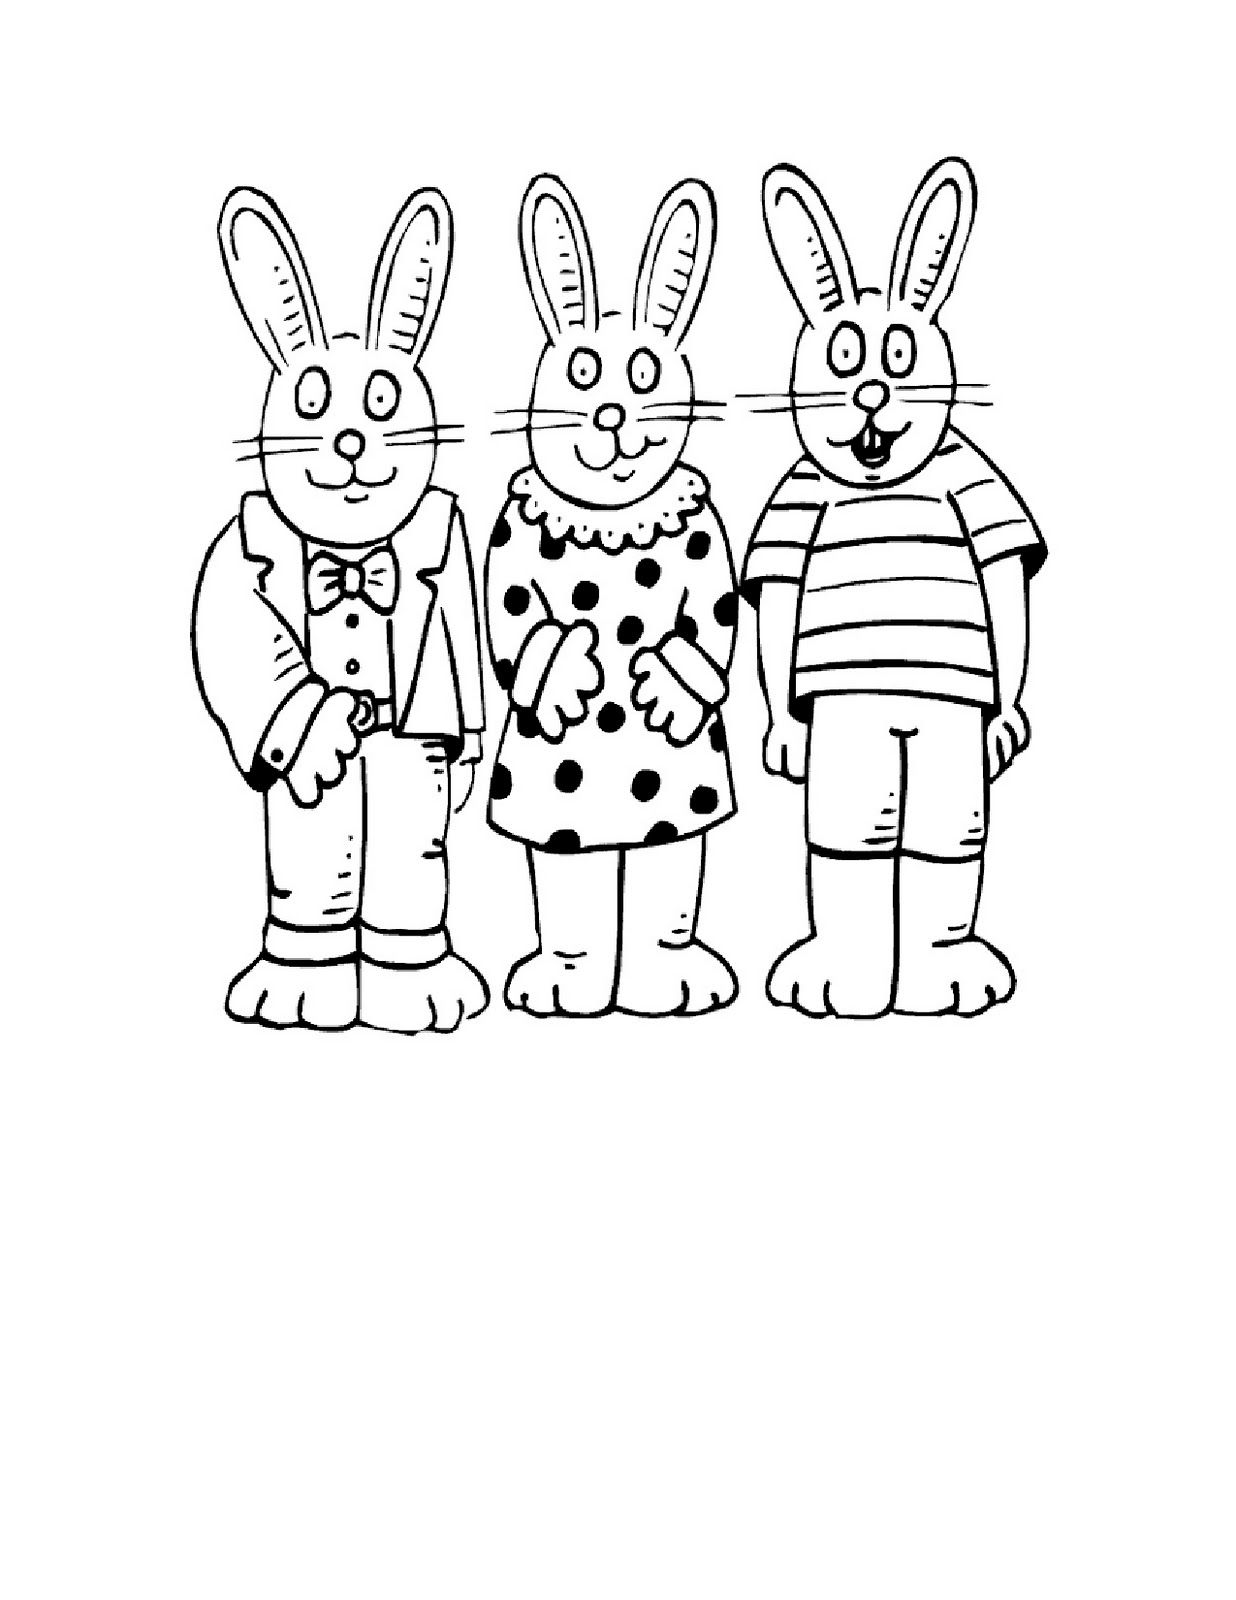 Easter Colouring Easter Bunny Colouring In Pages Easter Printables